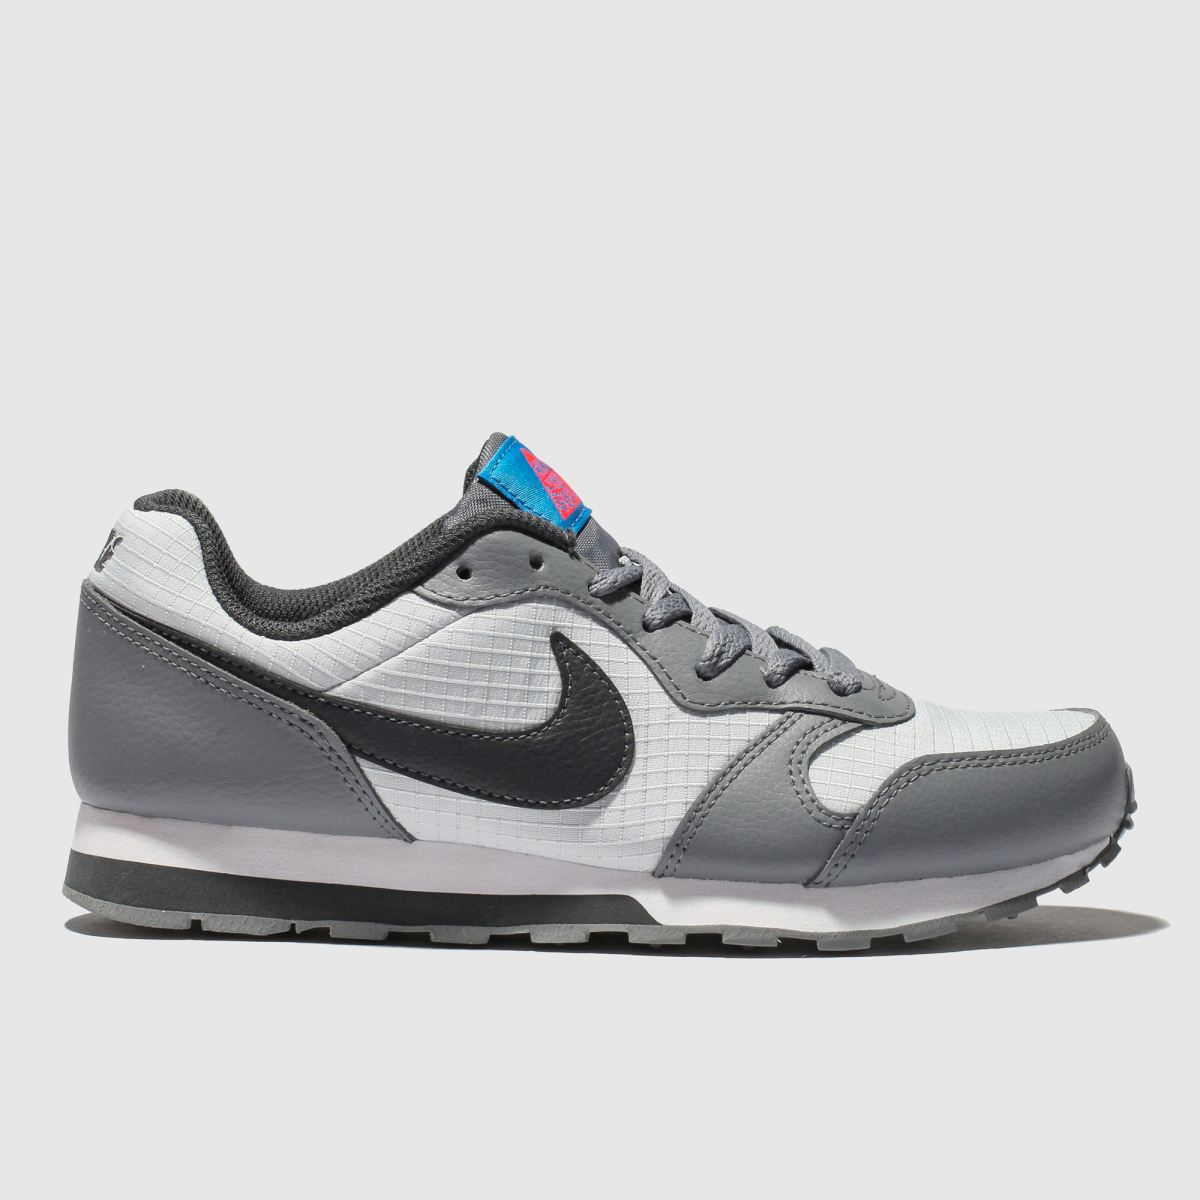 Nike White & Grey Md Runner 2 Trainers Youth